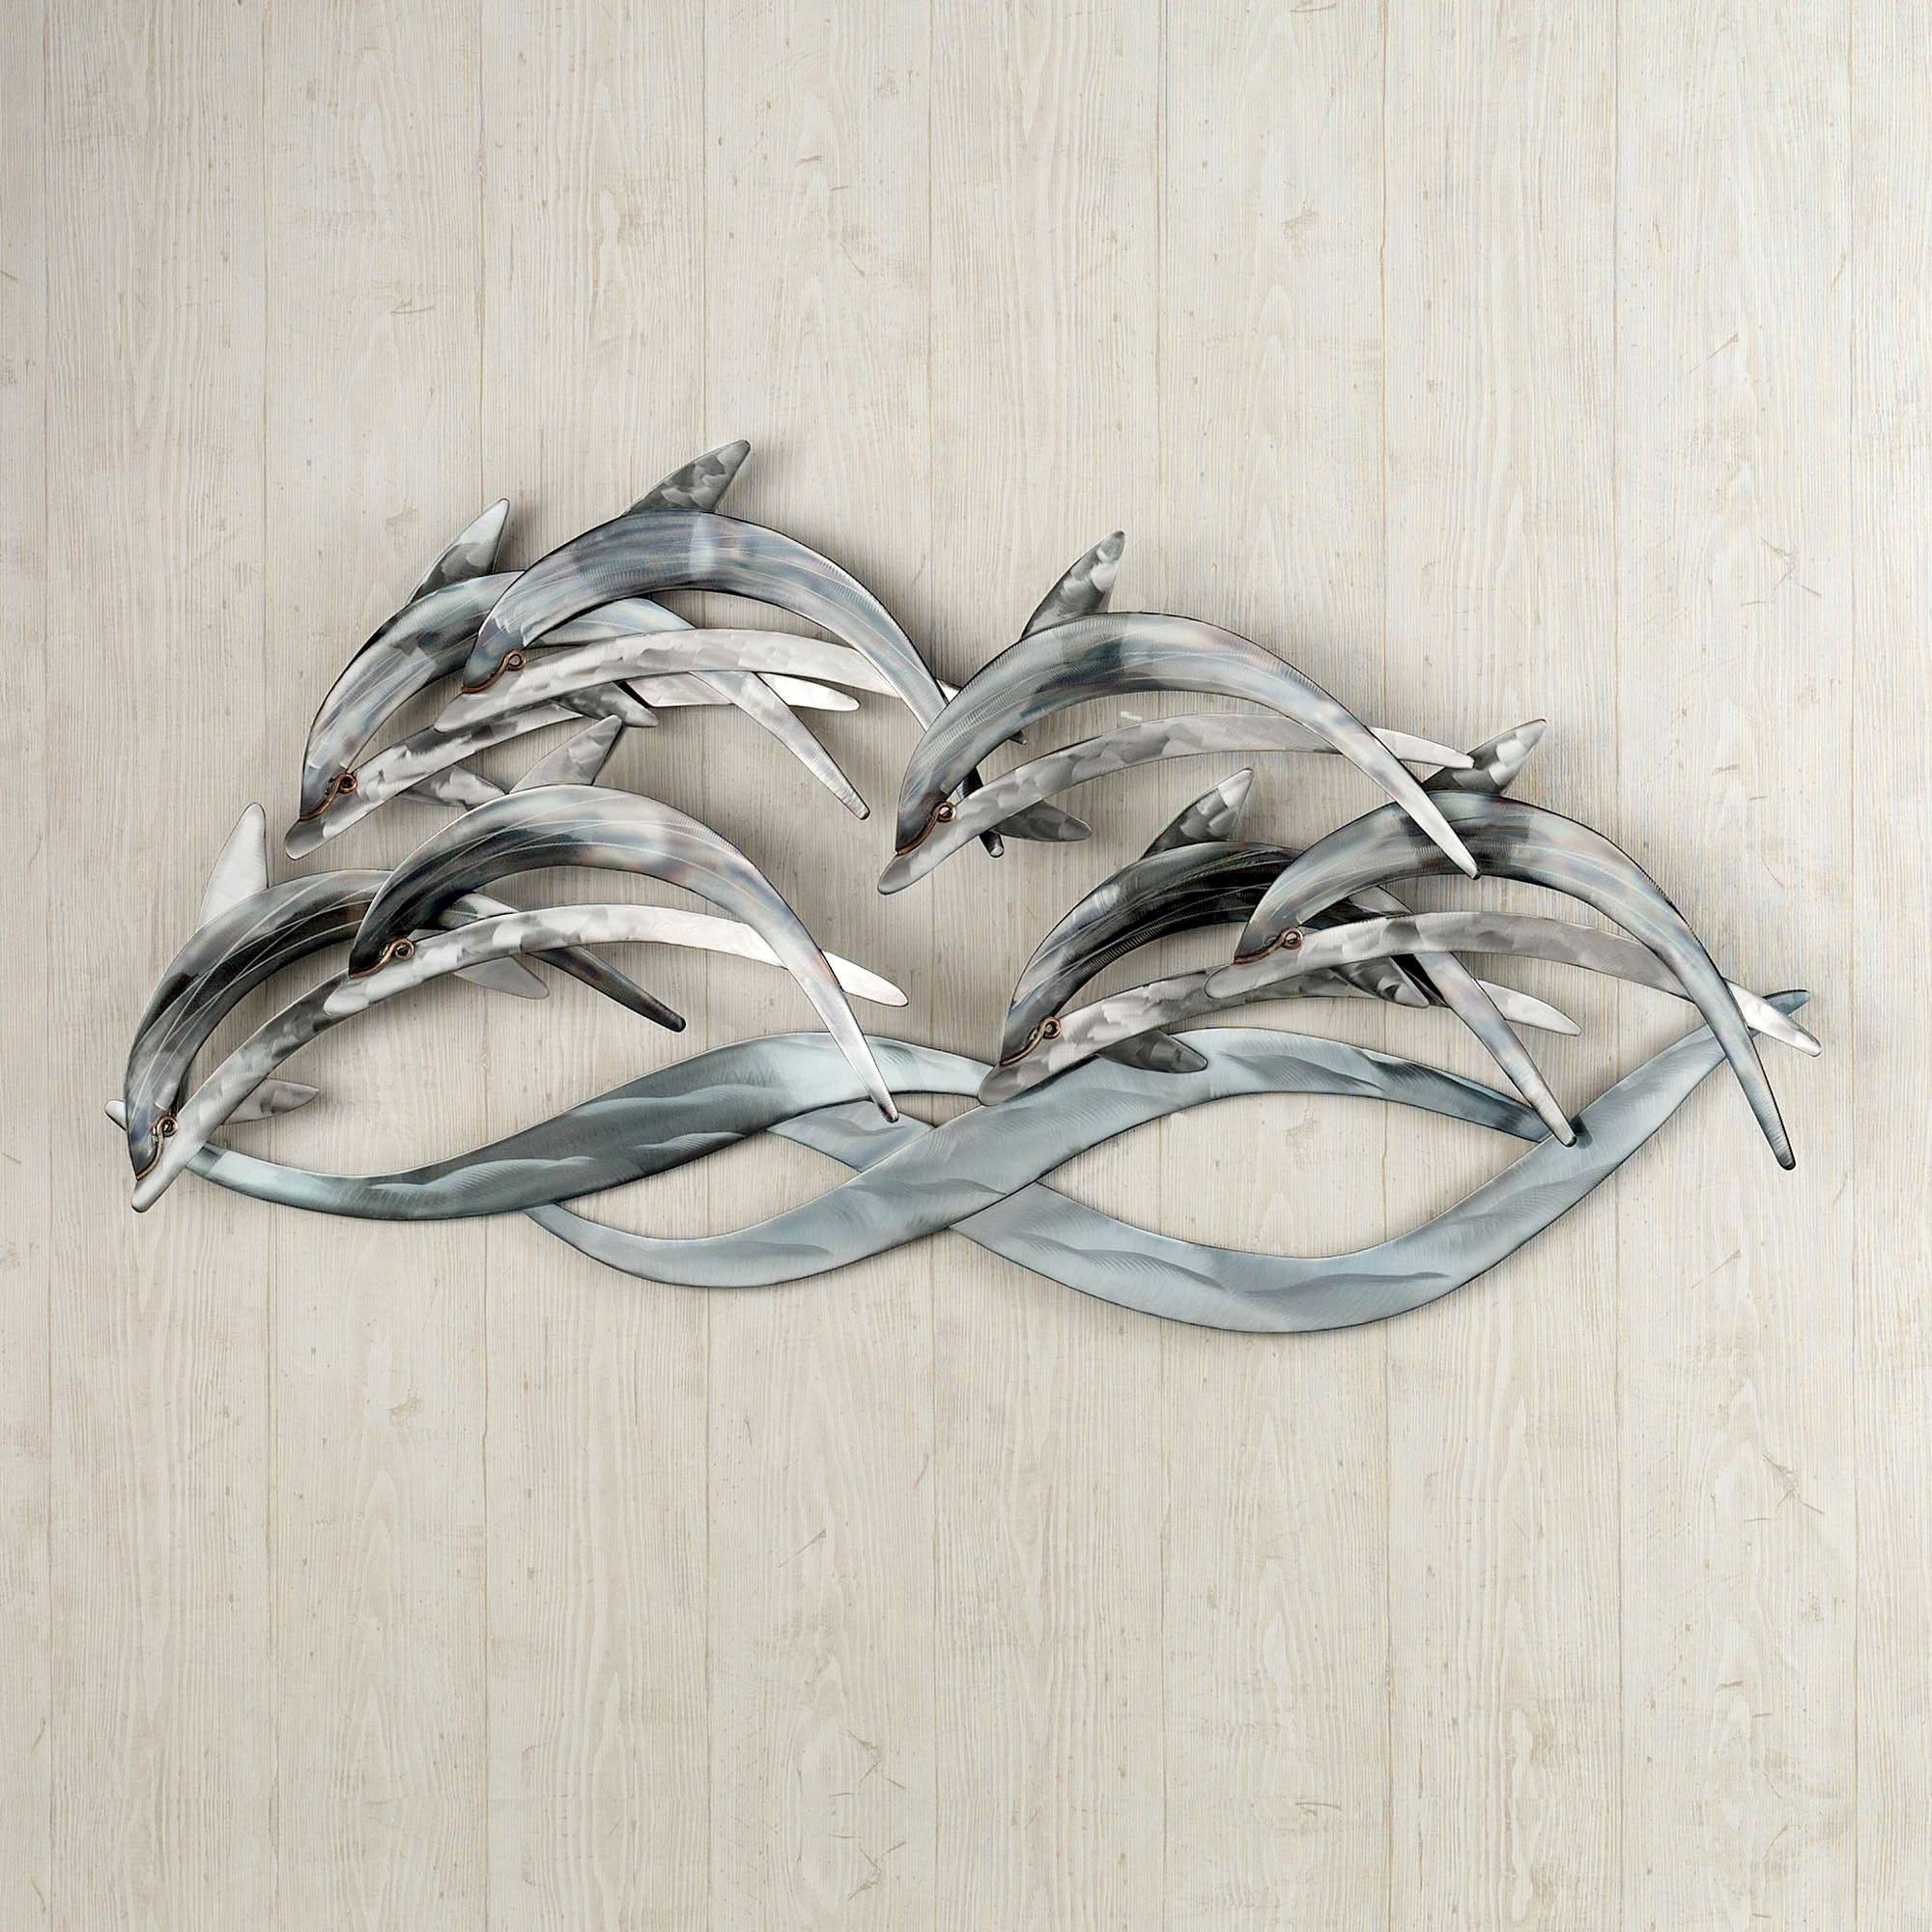 Wave Dancers Dolphin Stainless Steel Wall Sculpture Within Most Recently Released Dolphin Metal Wall Art (View 24 of 25)